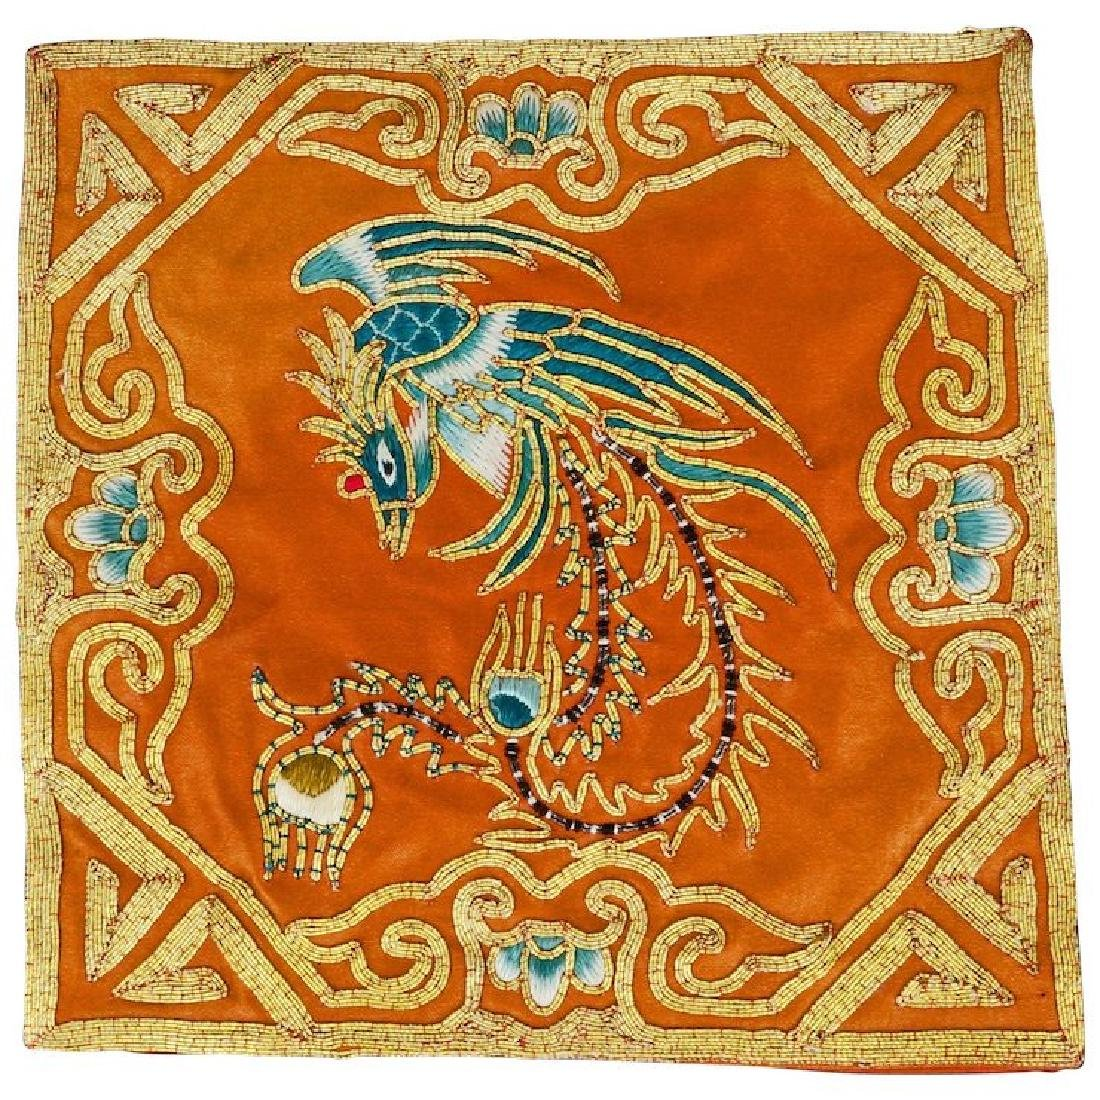 Chinese embroidered square with gilt thread of a